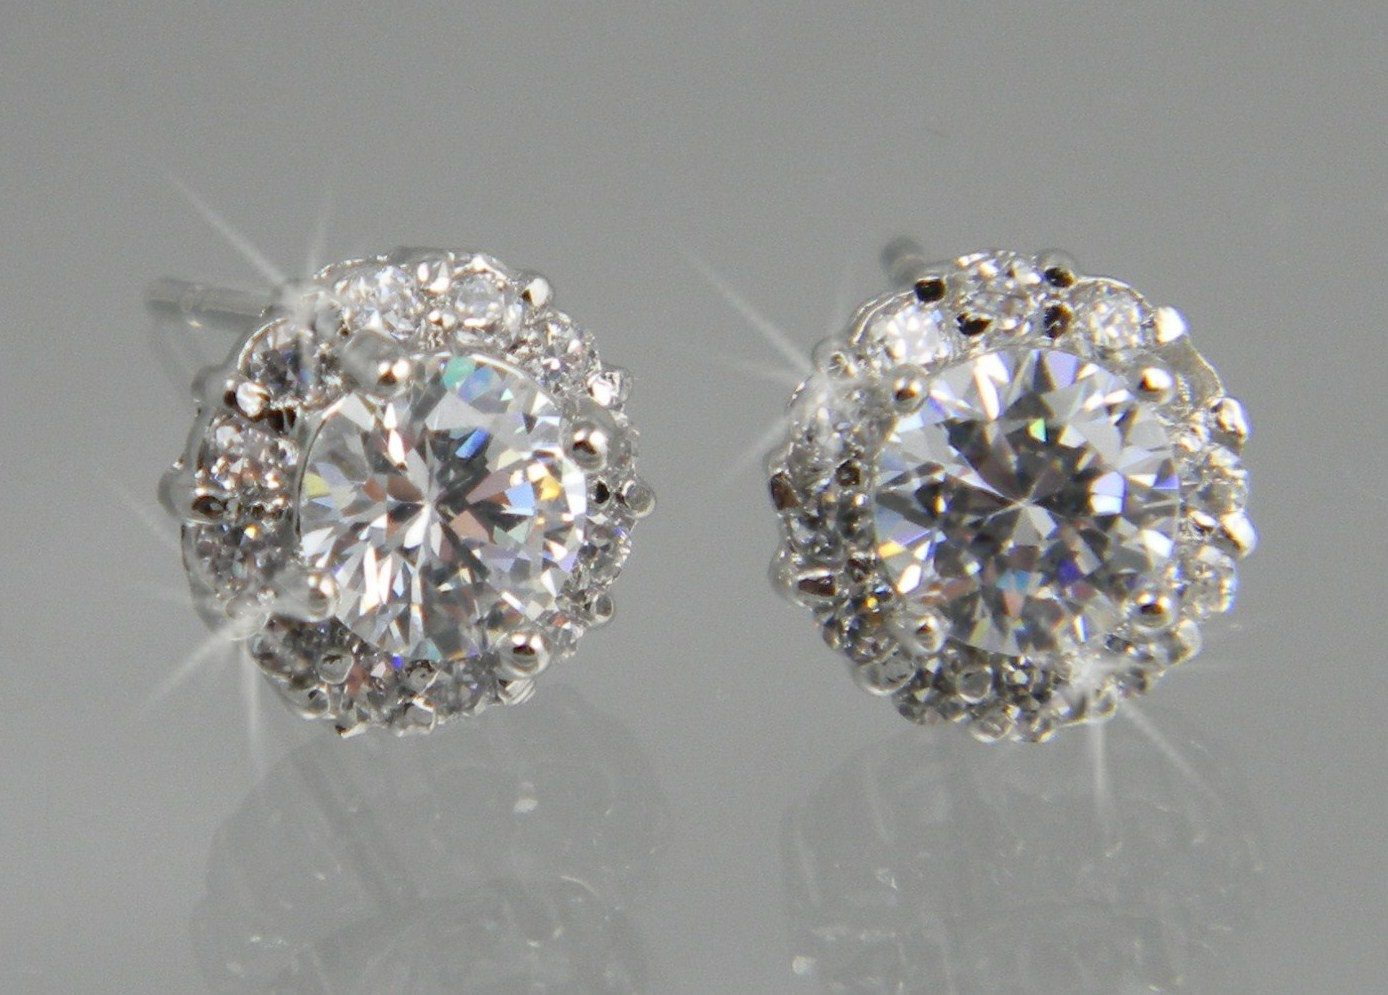 Crystal Stud Earrings Bridal Wedding Bridesmaids Small And Dainty Silver Tone Rose Gold